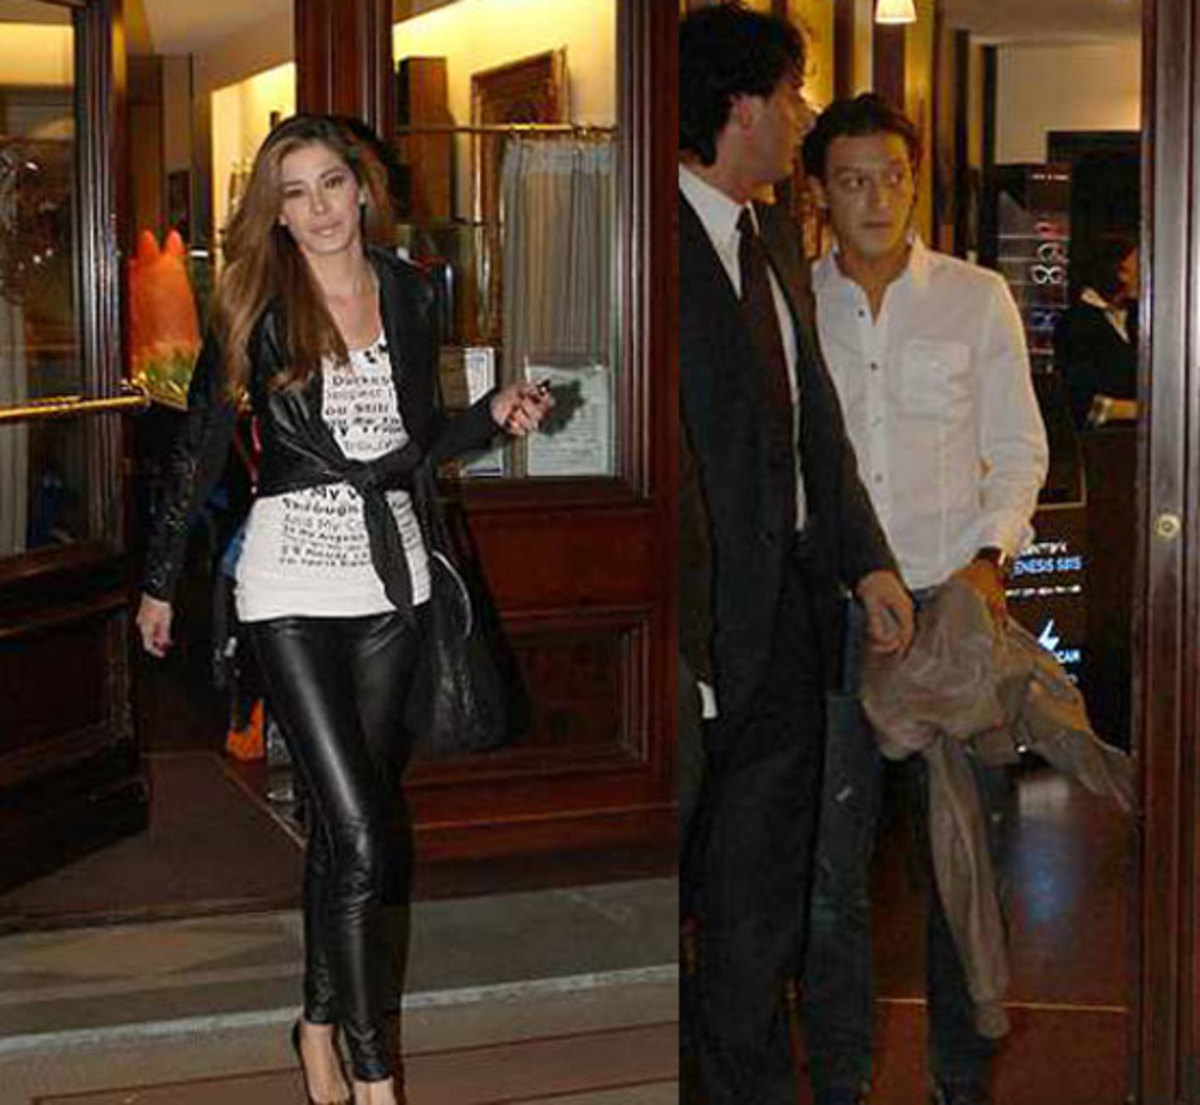 Ozil is caught while dating with his new girlfriend Aida Yespica.